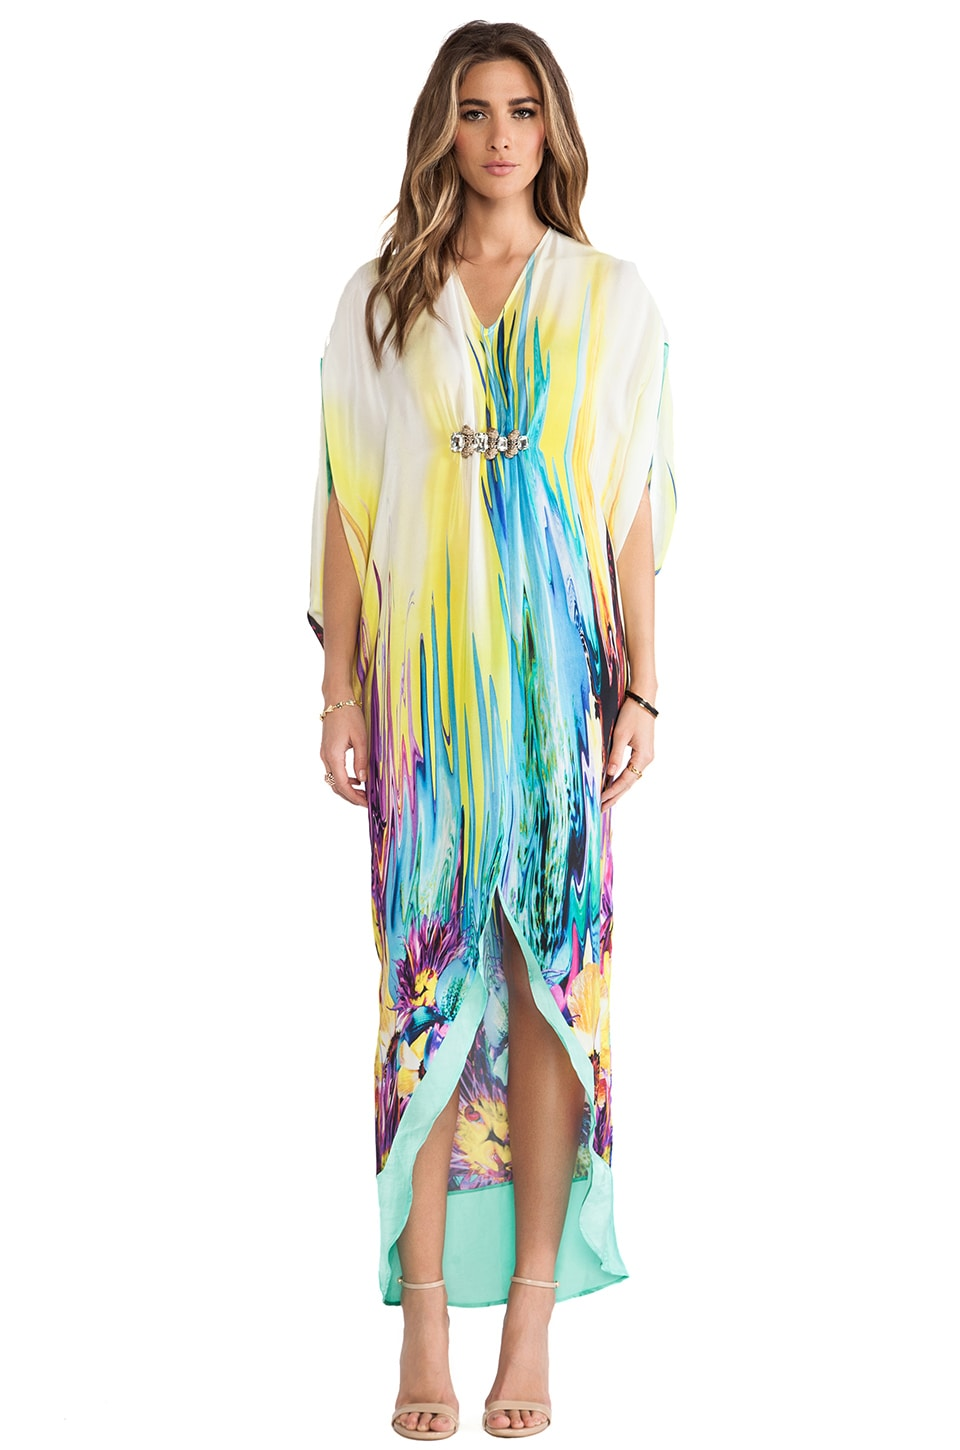 Caffe Caftan in Aqua Splash